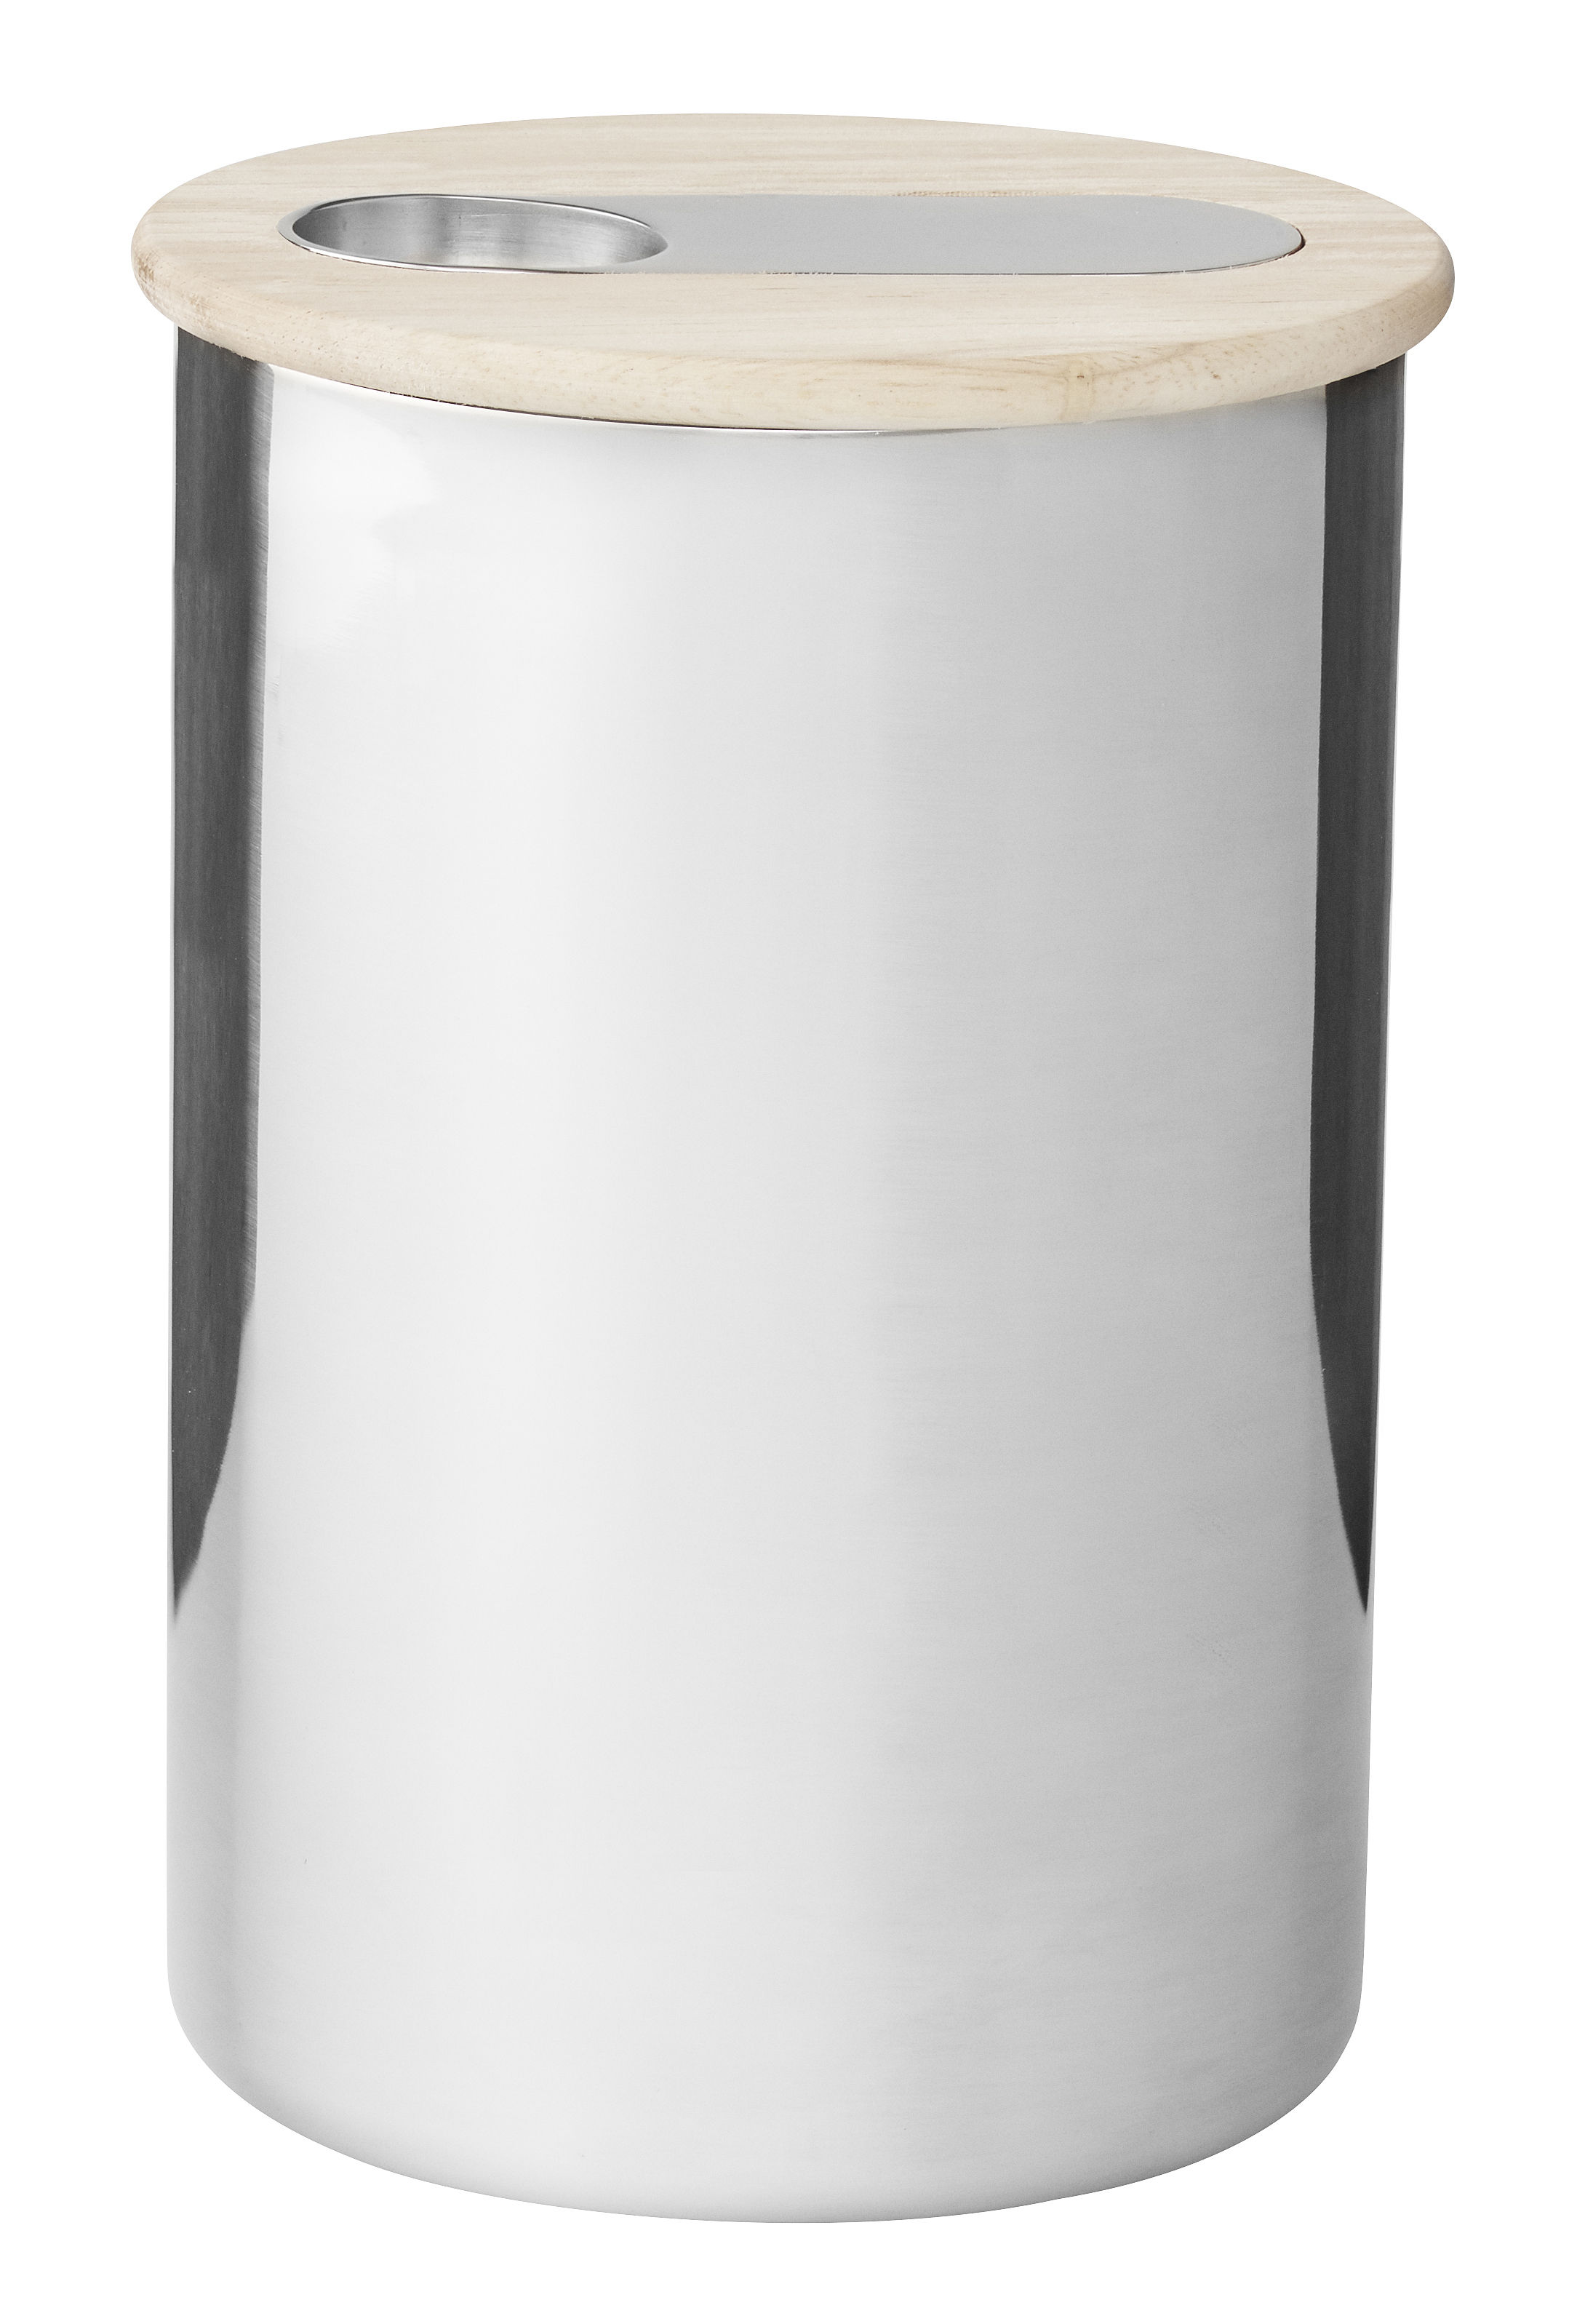 Kitchenware - Kitchen Storage Jars - Scoop Airproof jar - For coffee - With spoon by Stelton - 500 gr / Steel & wood - Polished stainless steel, Rubber, Wood